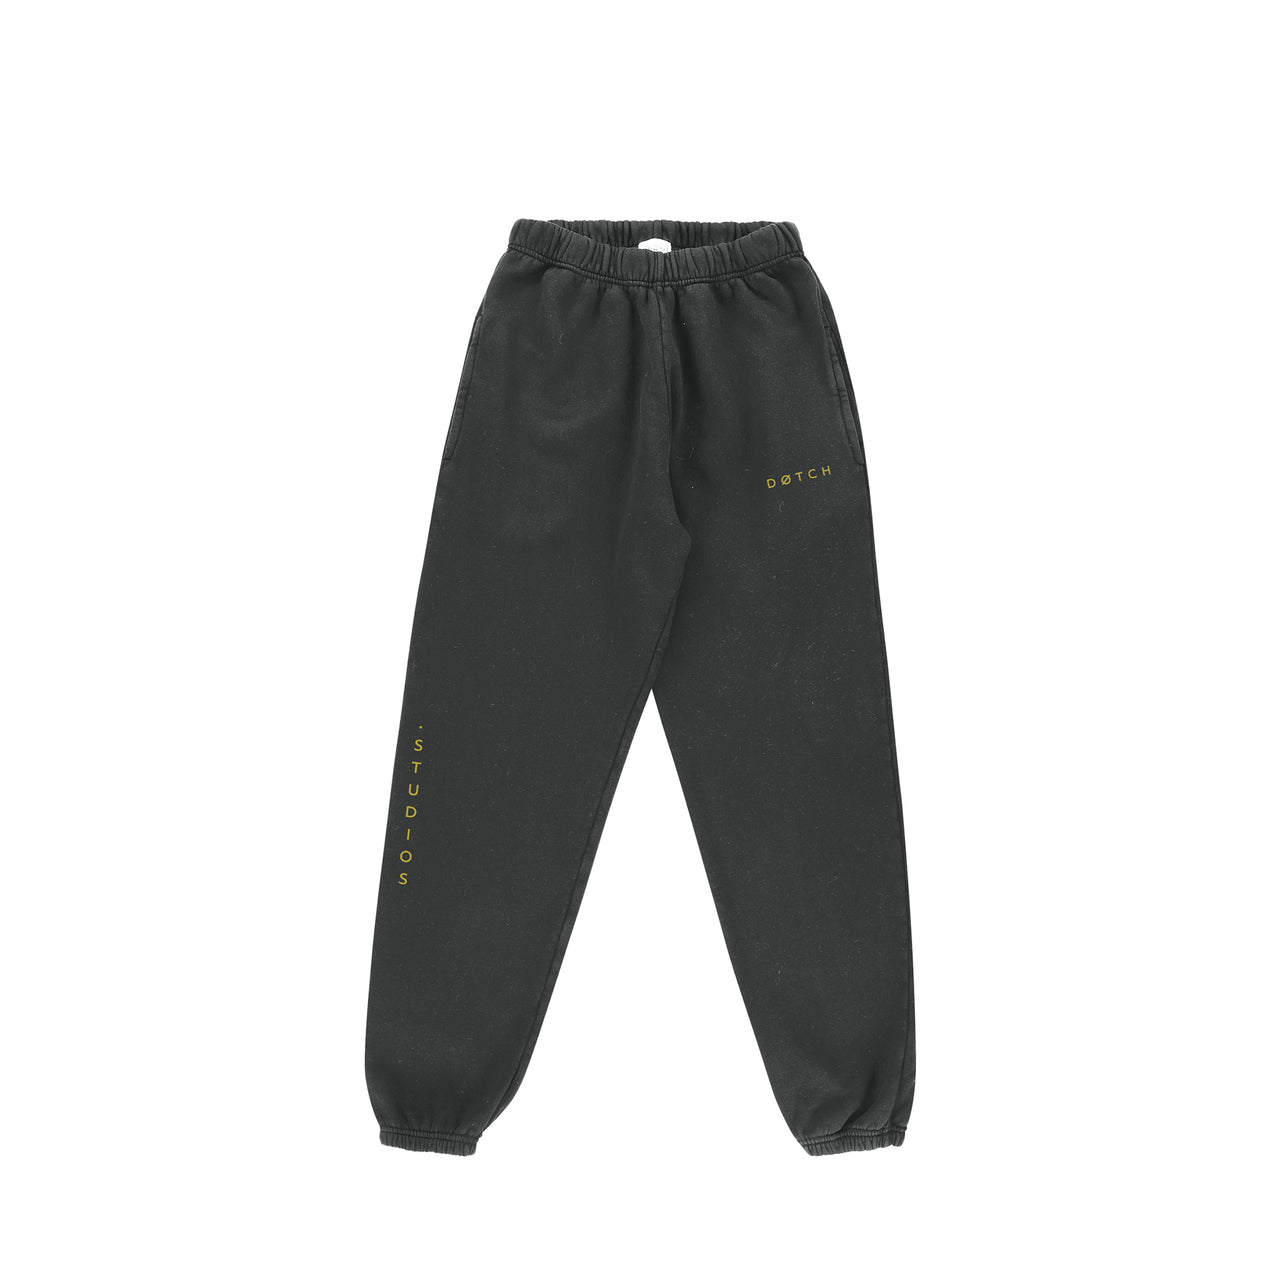 .STUDIO SWEATPANTS - GRAPHITE & YELLOW